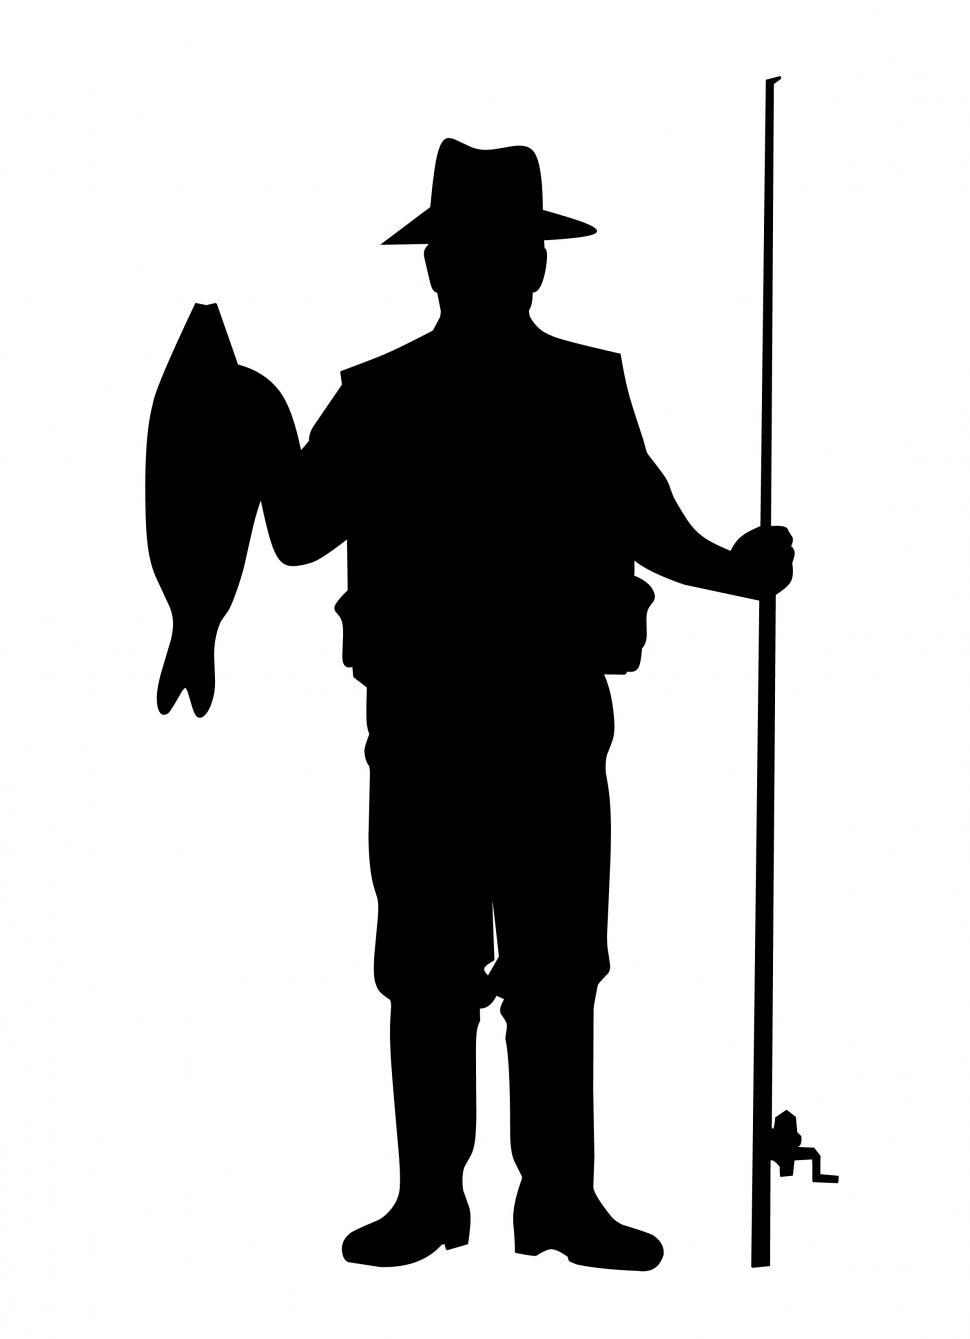 Download Free Stock Photo of fisherman Silhouette